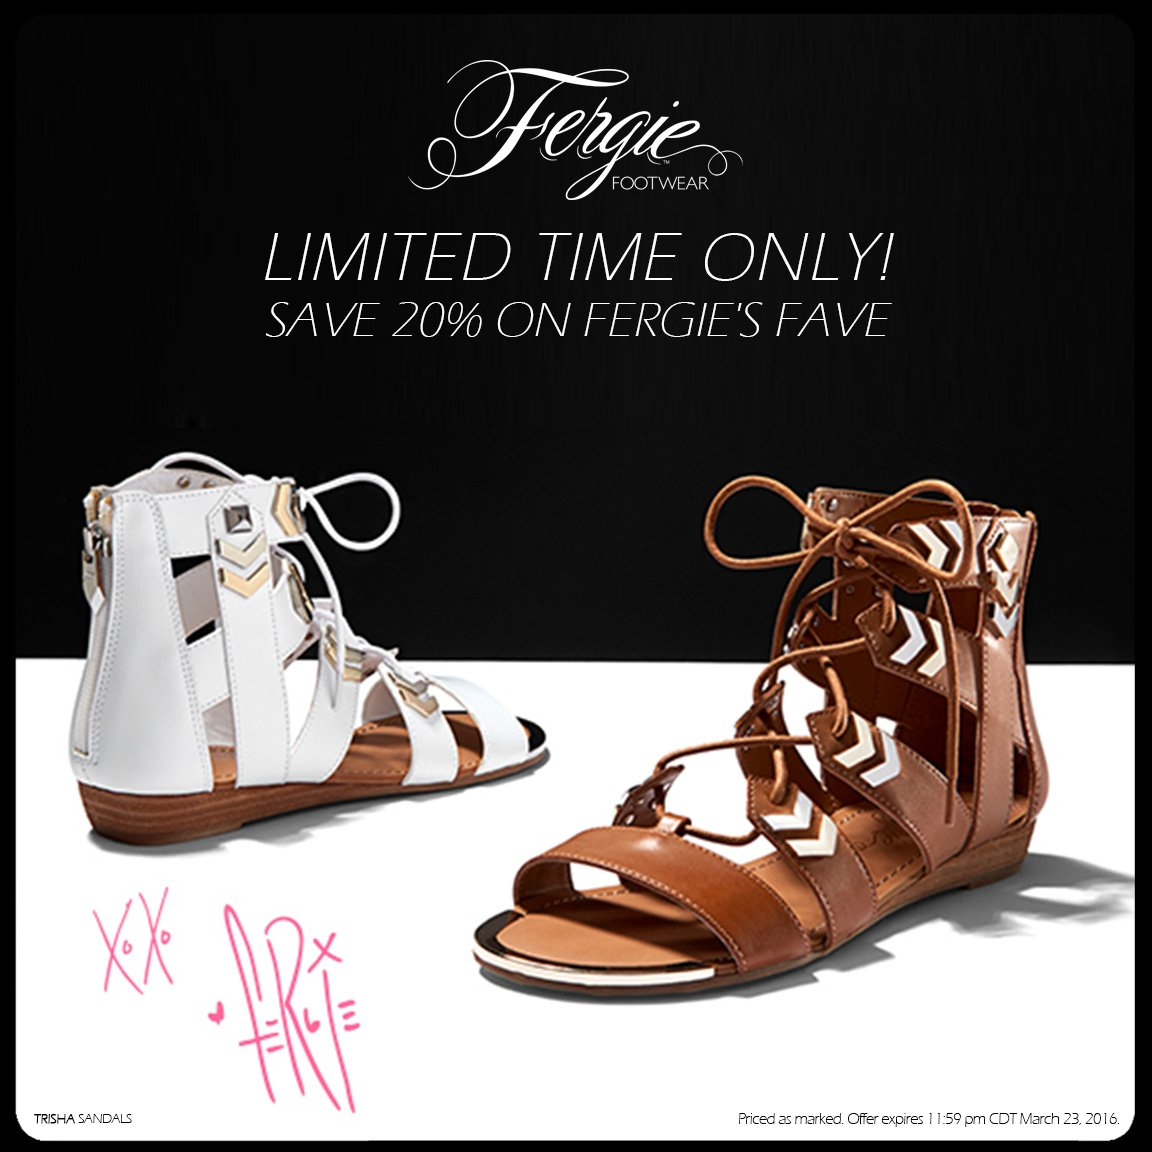 RT @FergieFootwear: SAVE 20% on #FergieFave TRISHA #sandals NOW thru 3/23!???? #shoesale #newsandals #laceupsandals https://t.co/BYT56SkKLm ht…